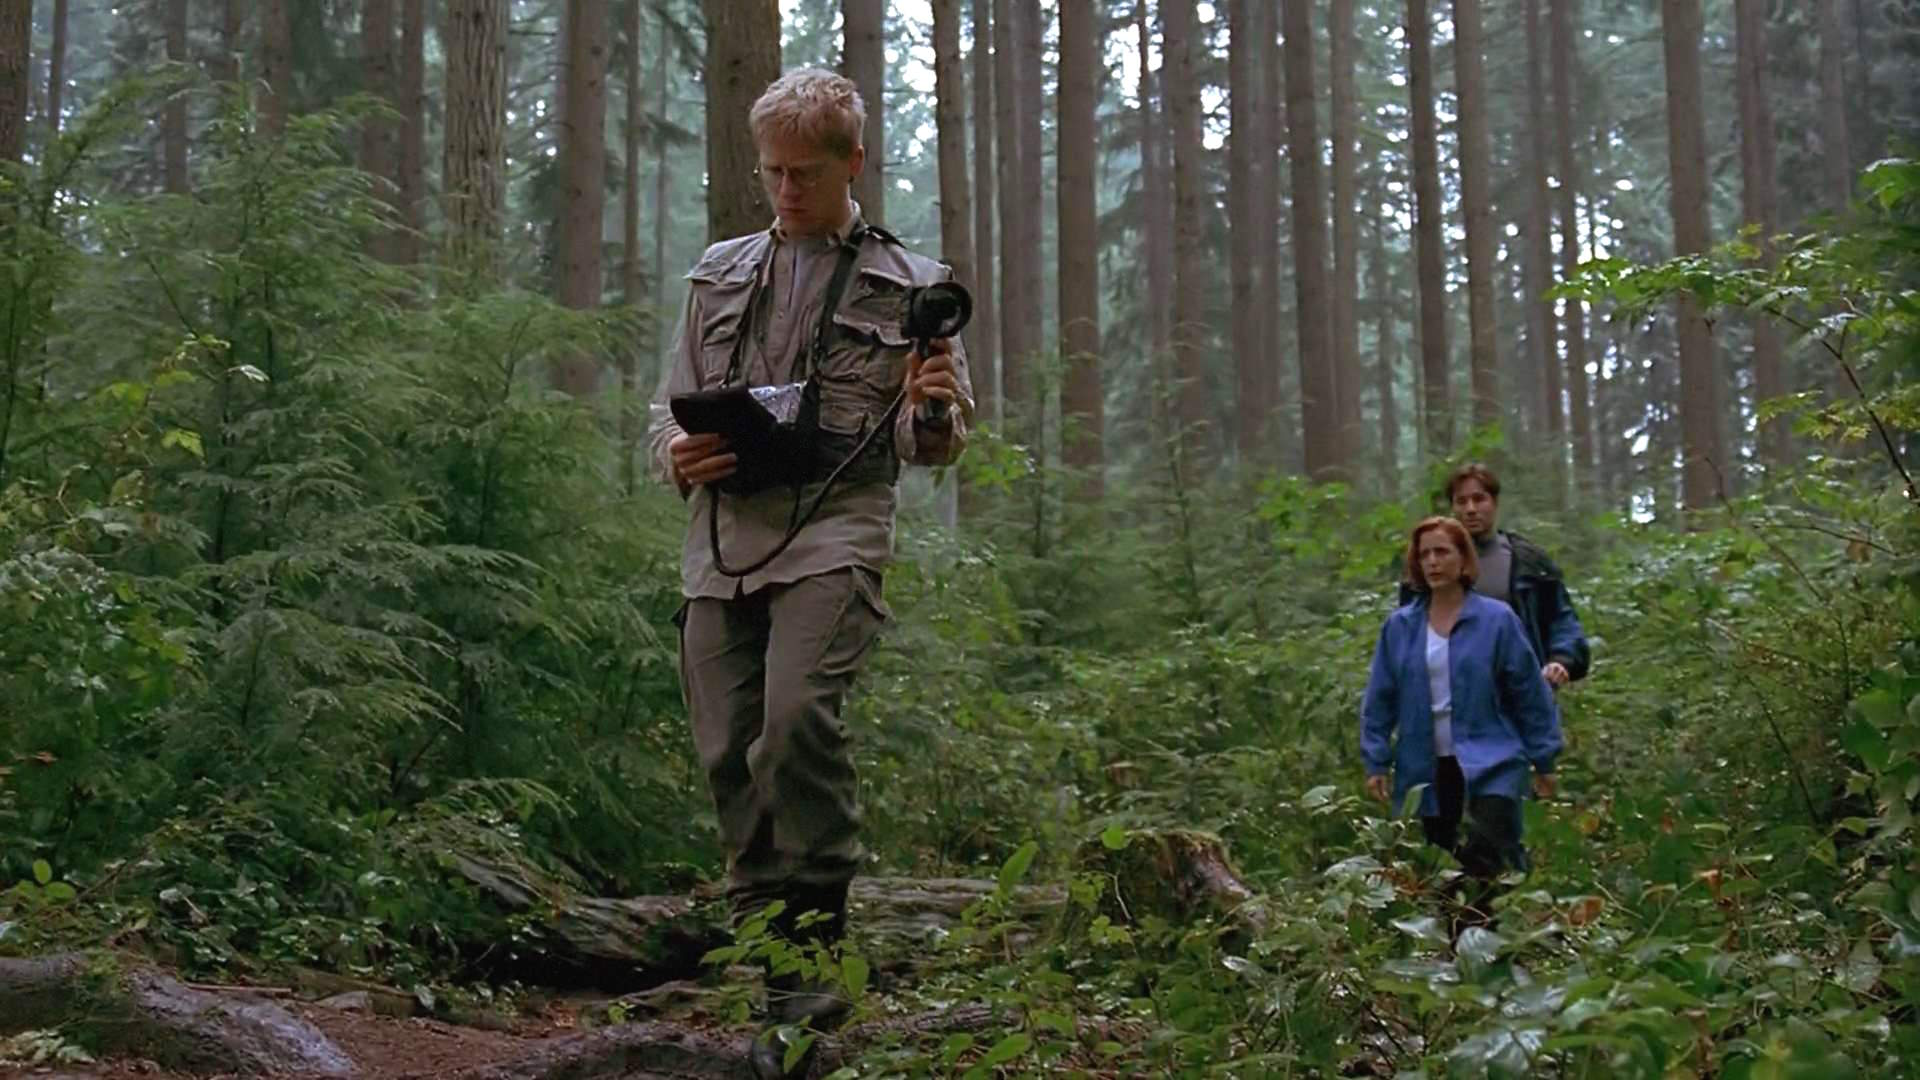 Gillian Anderson, David Duchovny, and Anthony Rapp in The X Files (1993)